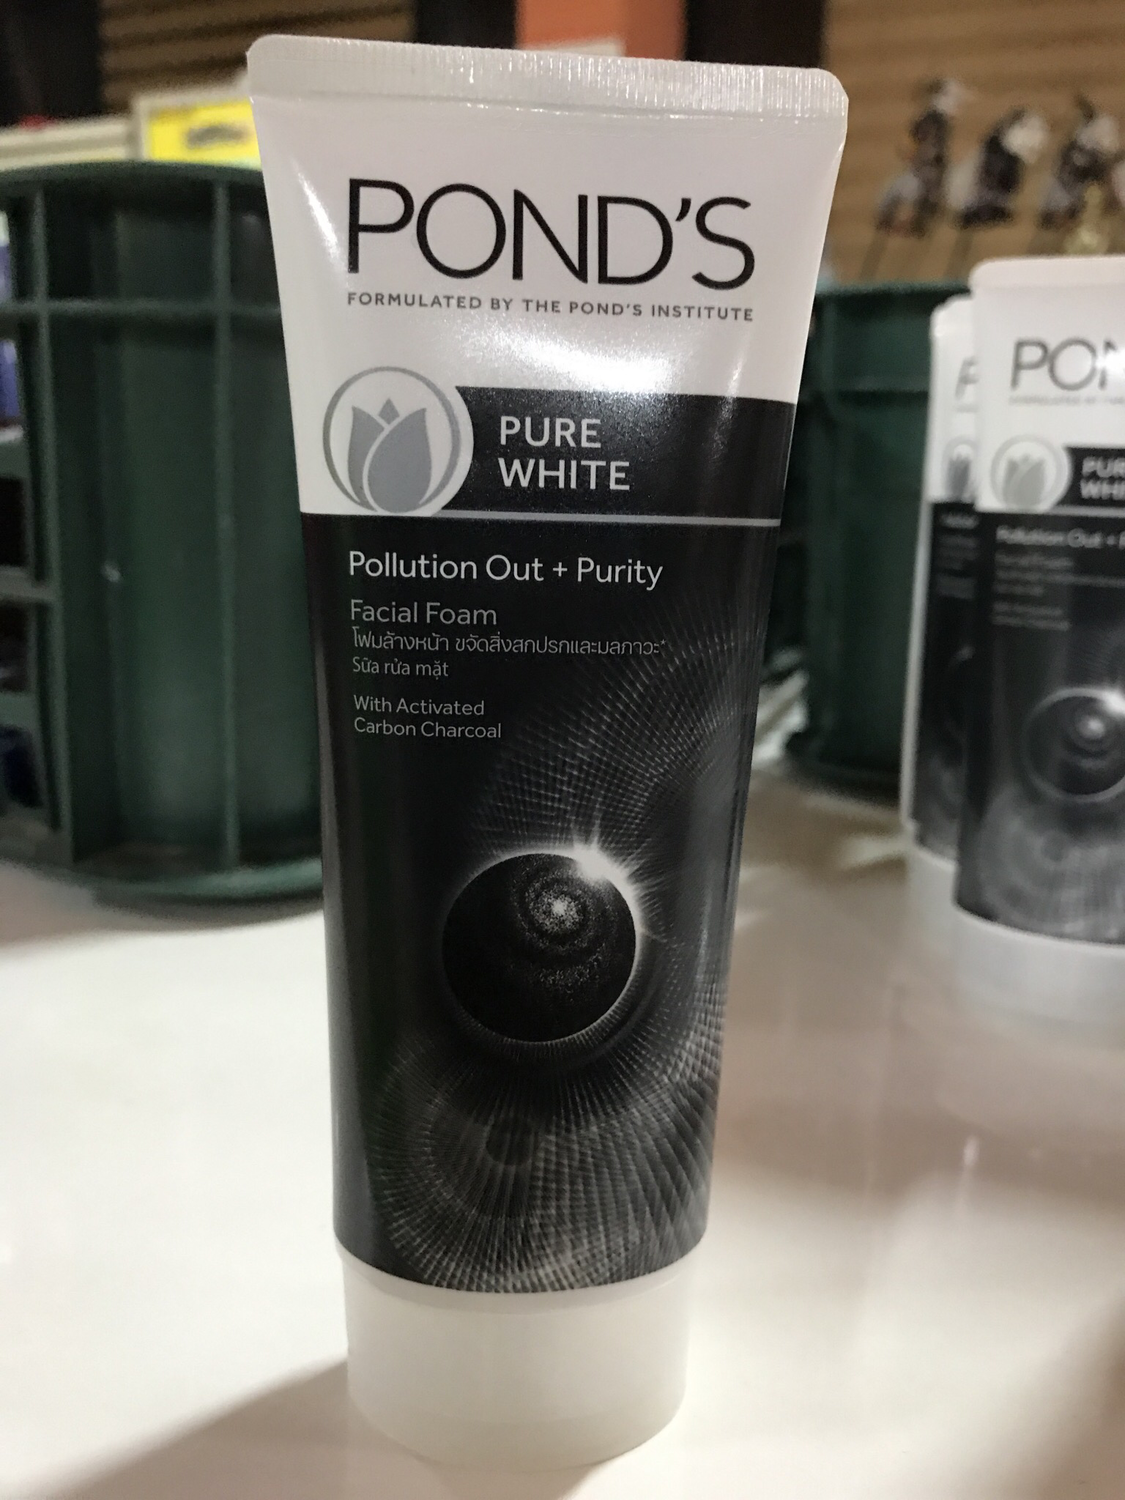 Pond's Pure White 100g